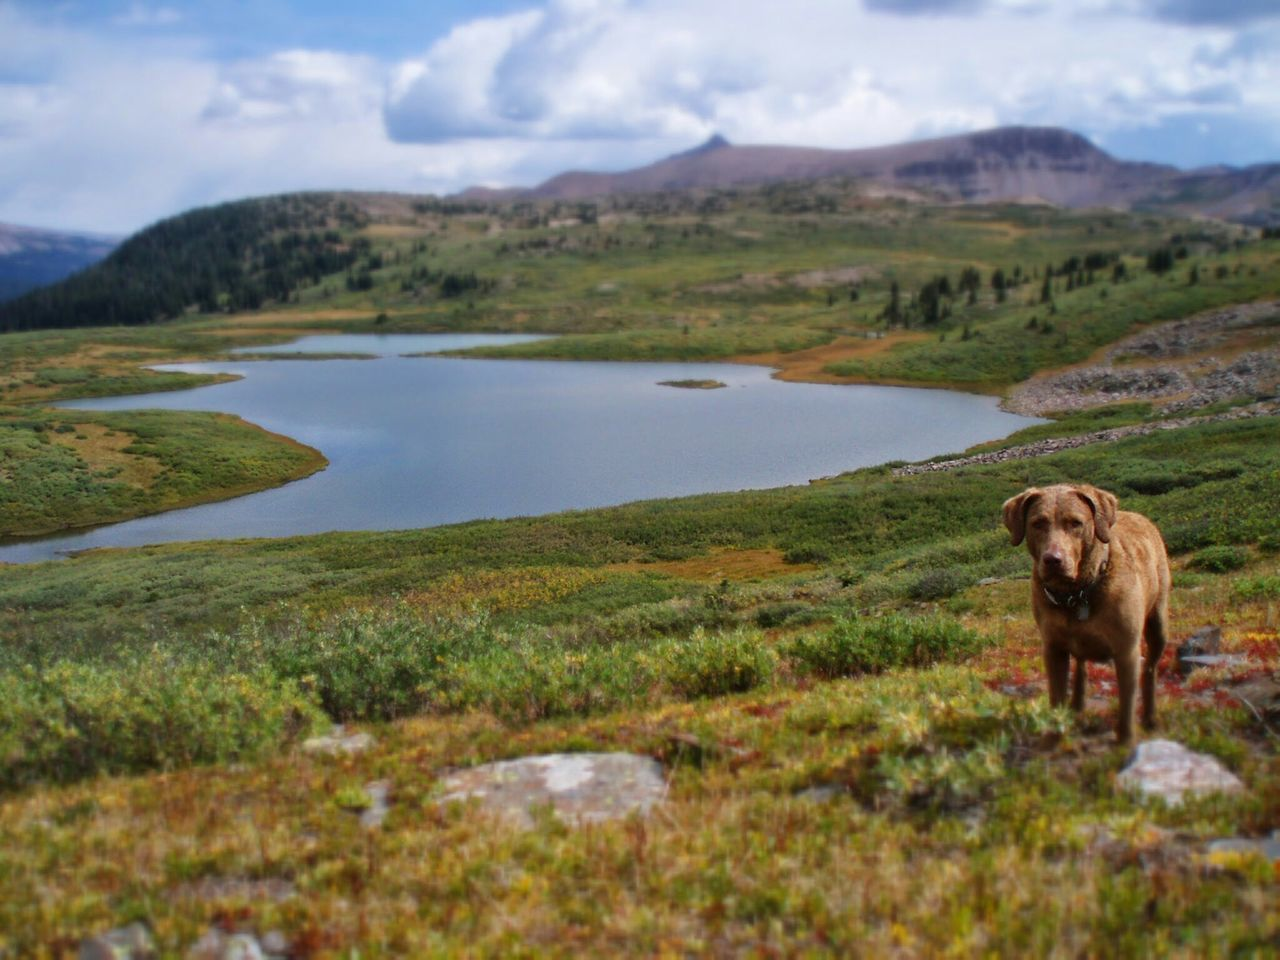 dog, domestic animals, one animal, animal themes, mammal, pets, grass, mountain, nature, landscape, field, no people, day, green color, outdoors, beauty in nature, scenics, sky